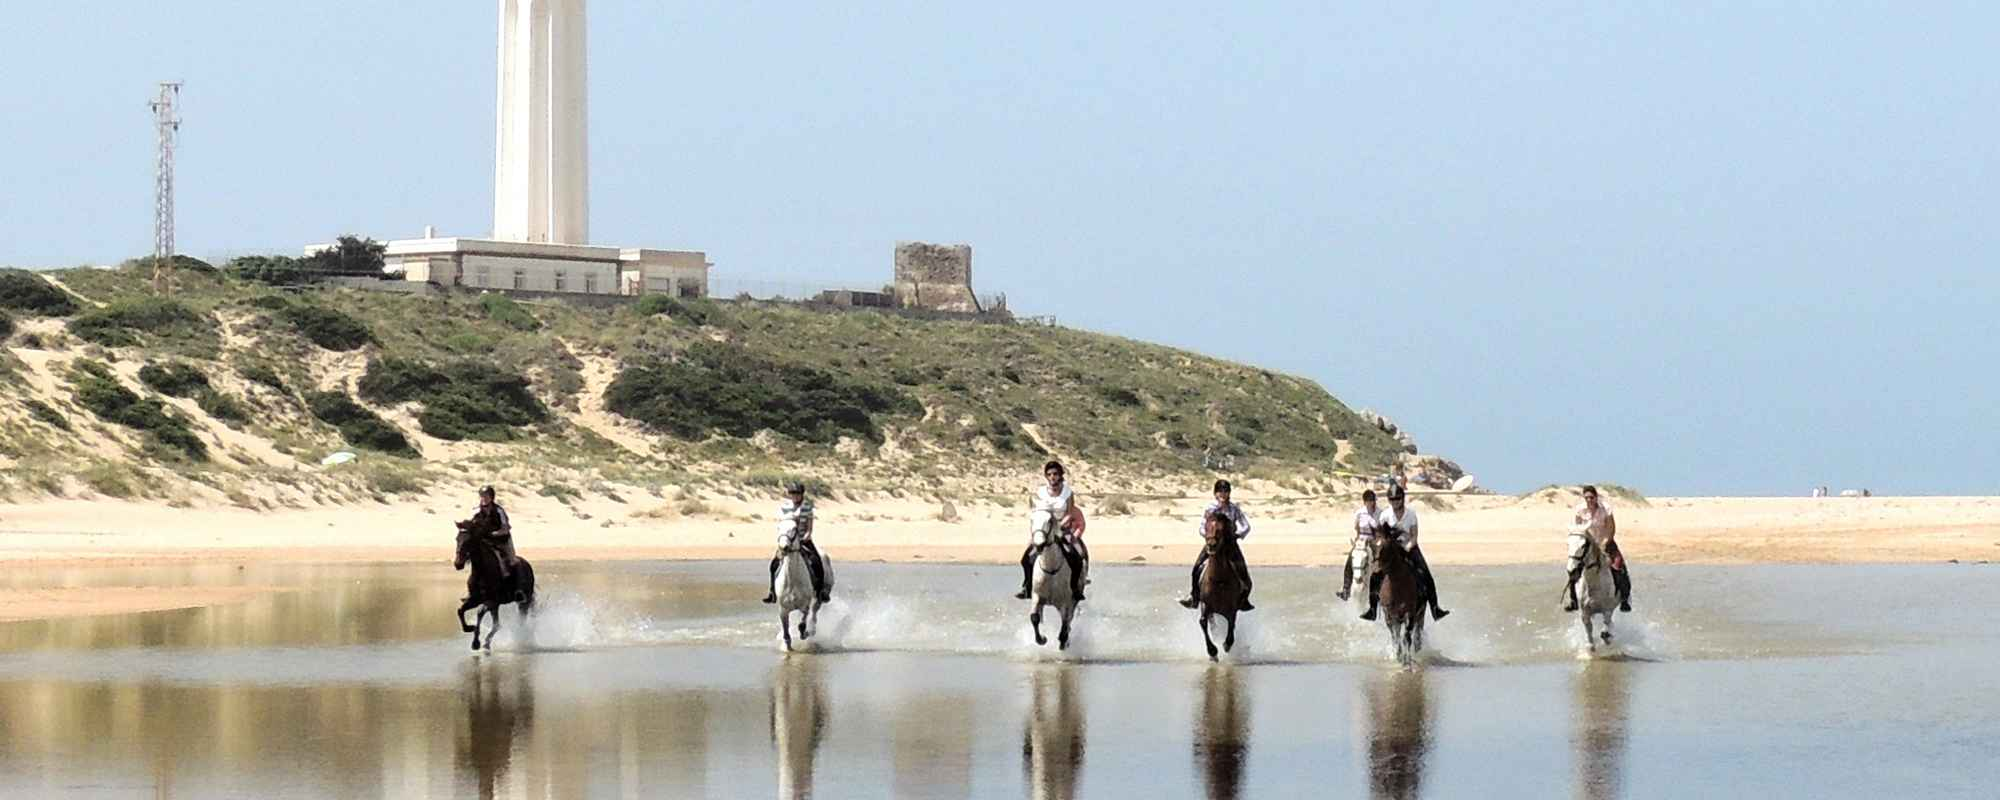 Horse riding holidays on the unspoilt Costa de la Luz.